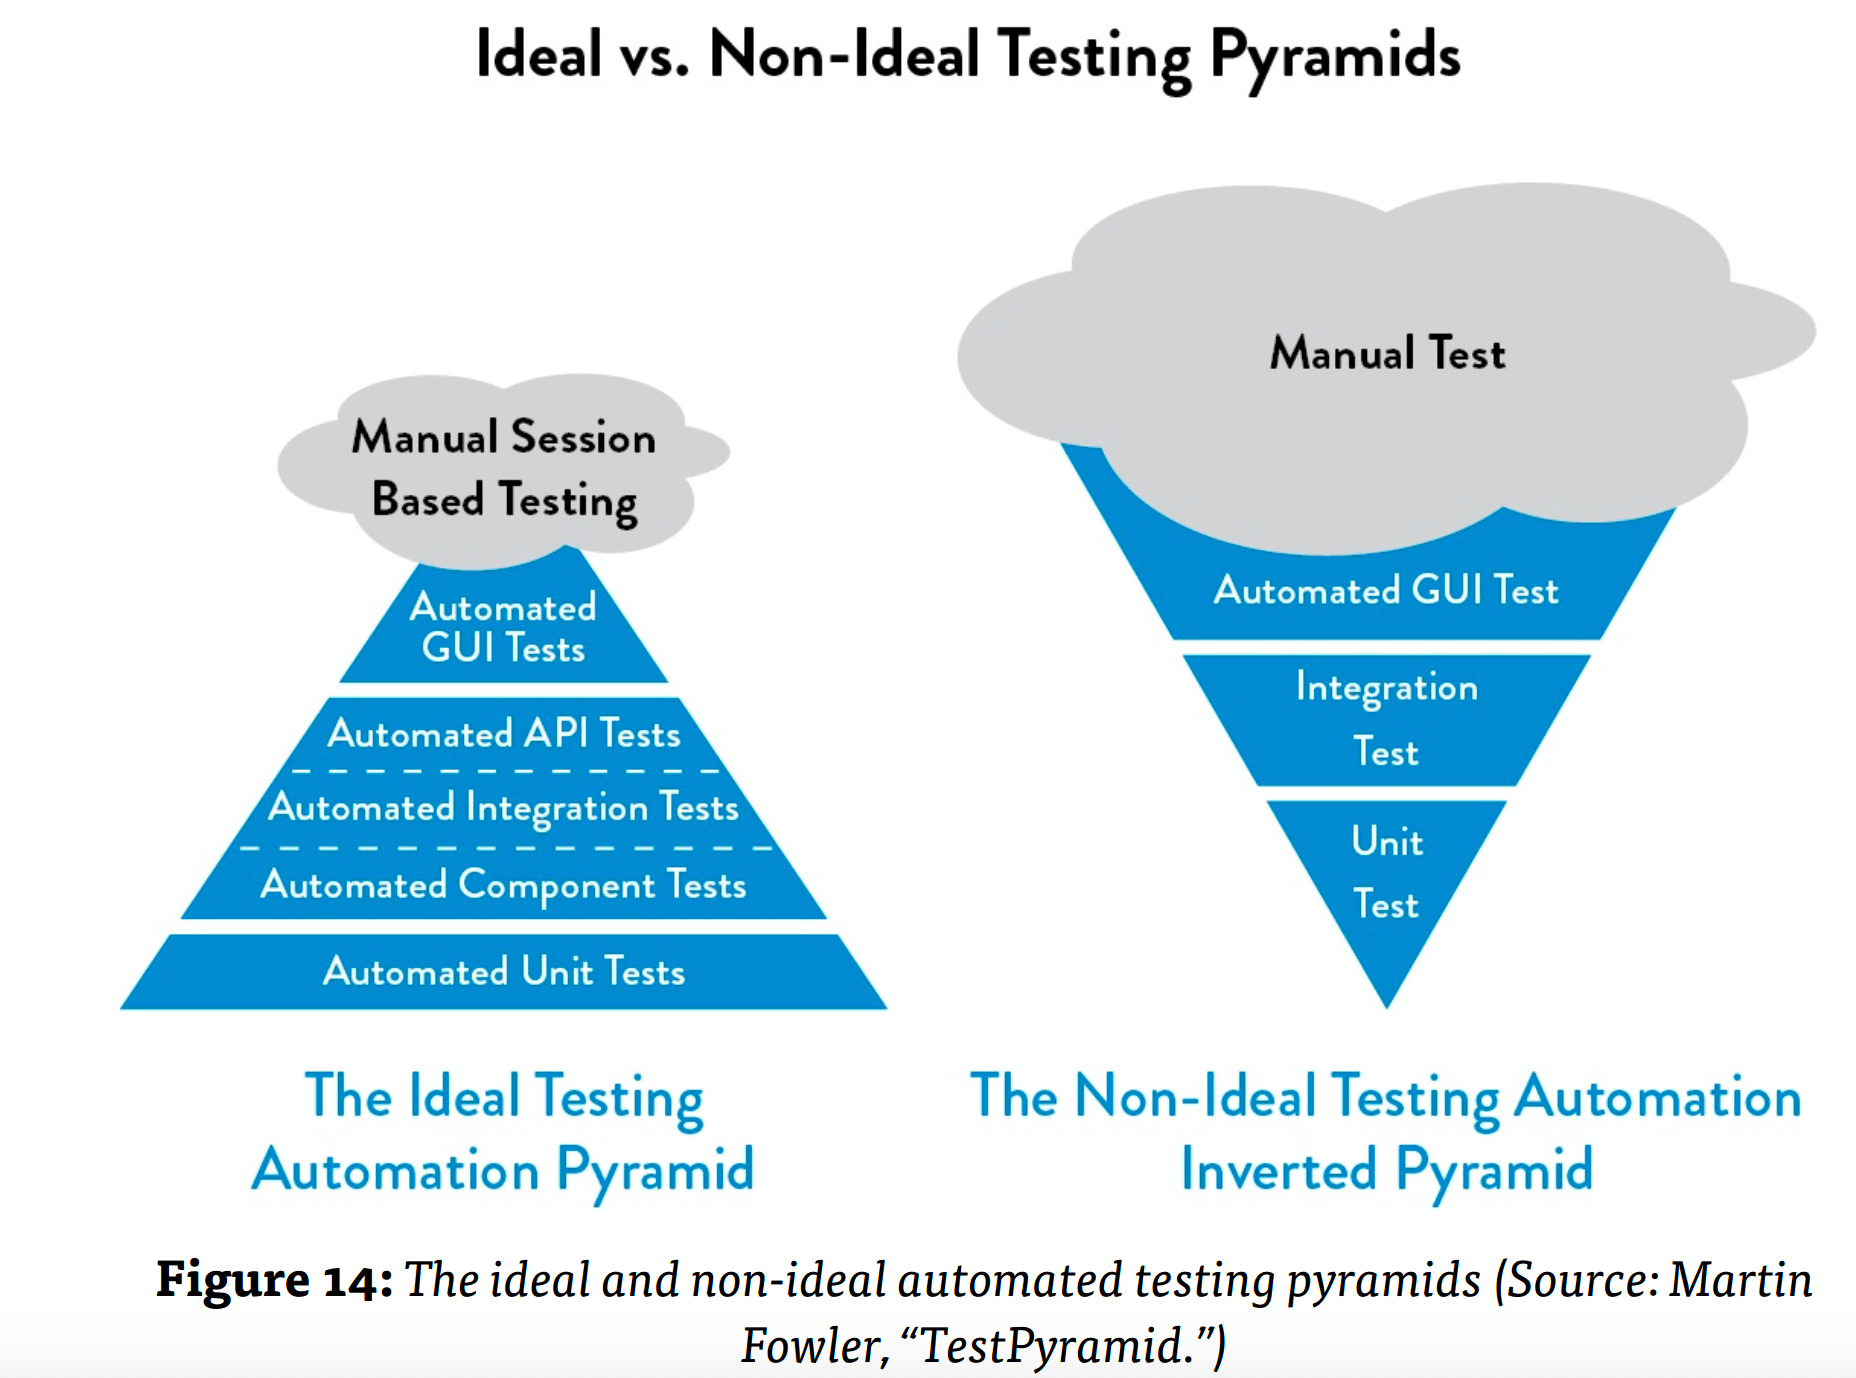 The ideal and non-ideal automated testing pyramids